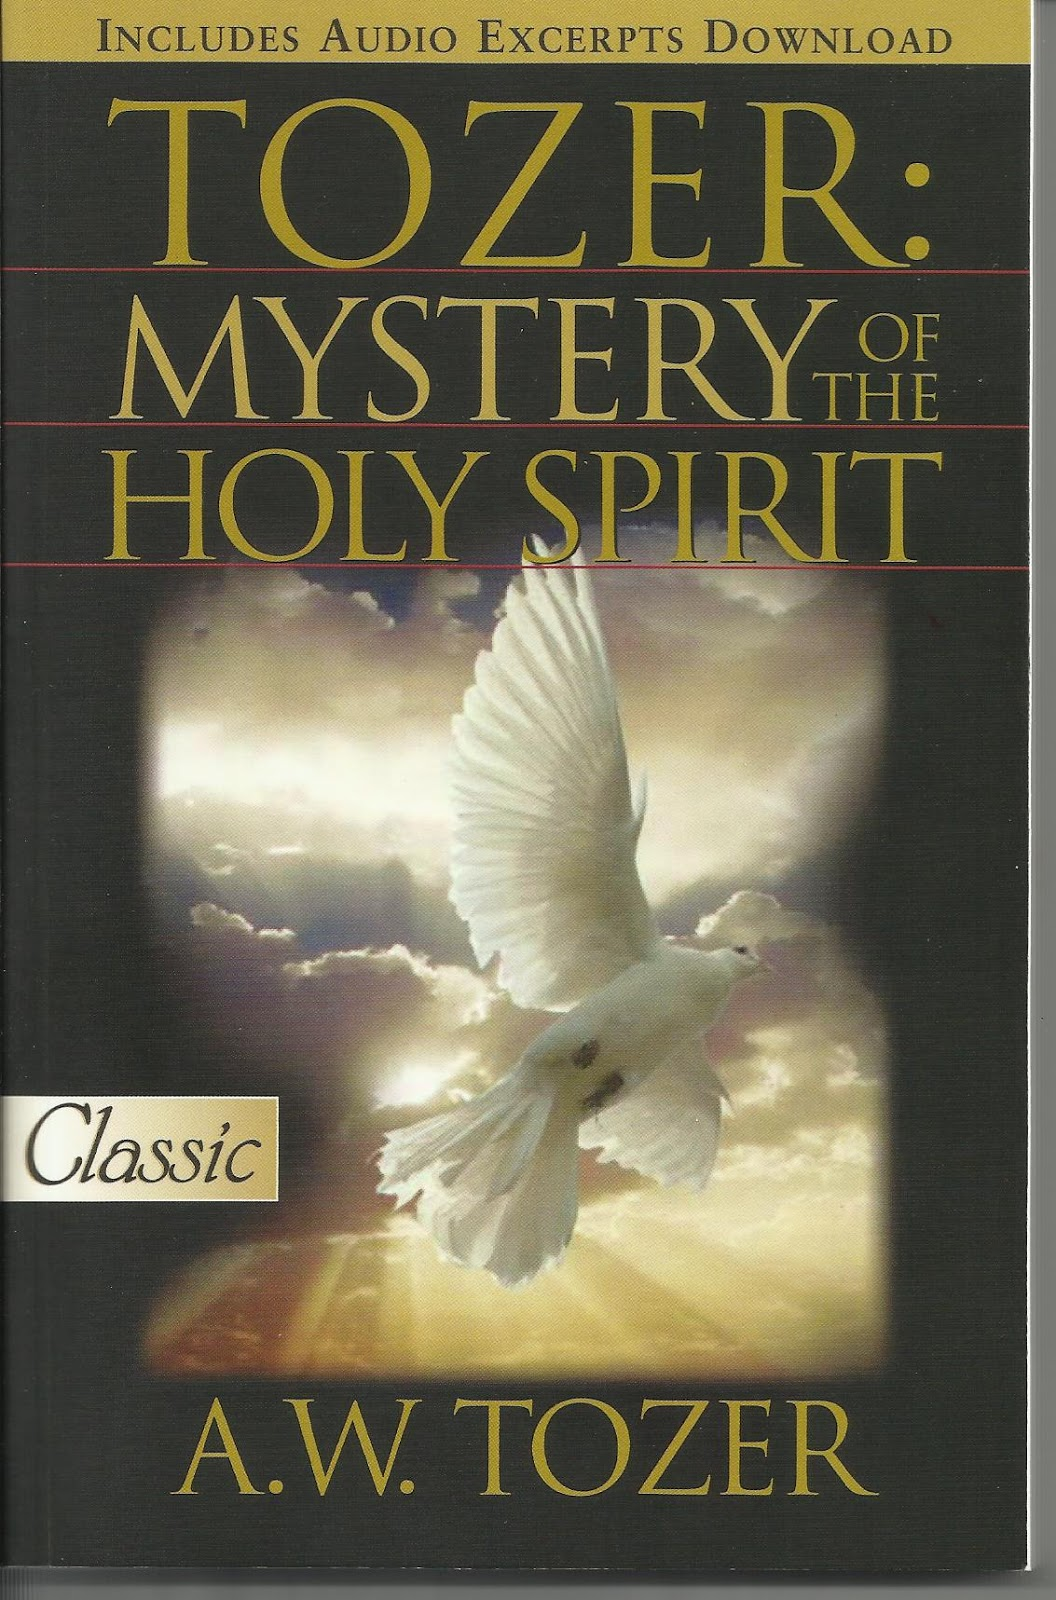 Quotes About The Holy Spirit Penless Writer Tozer Mystery Of The Holy Spirit